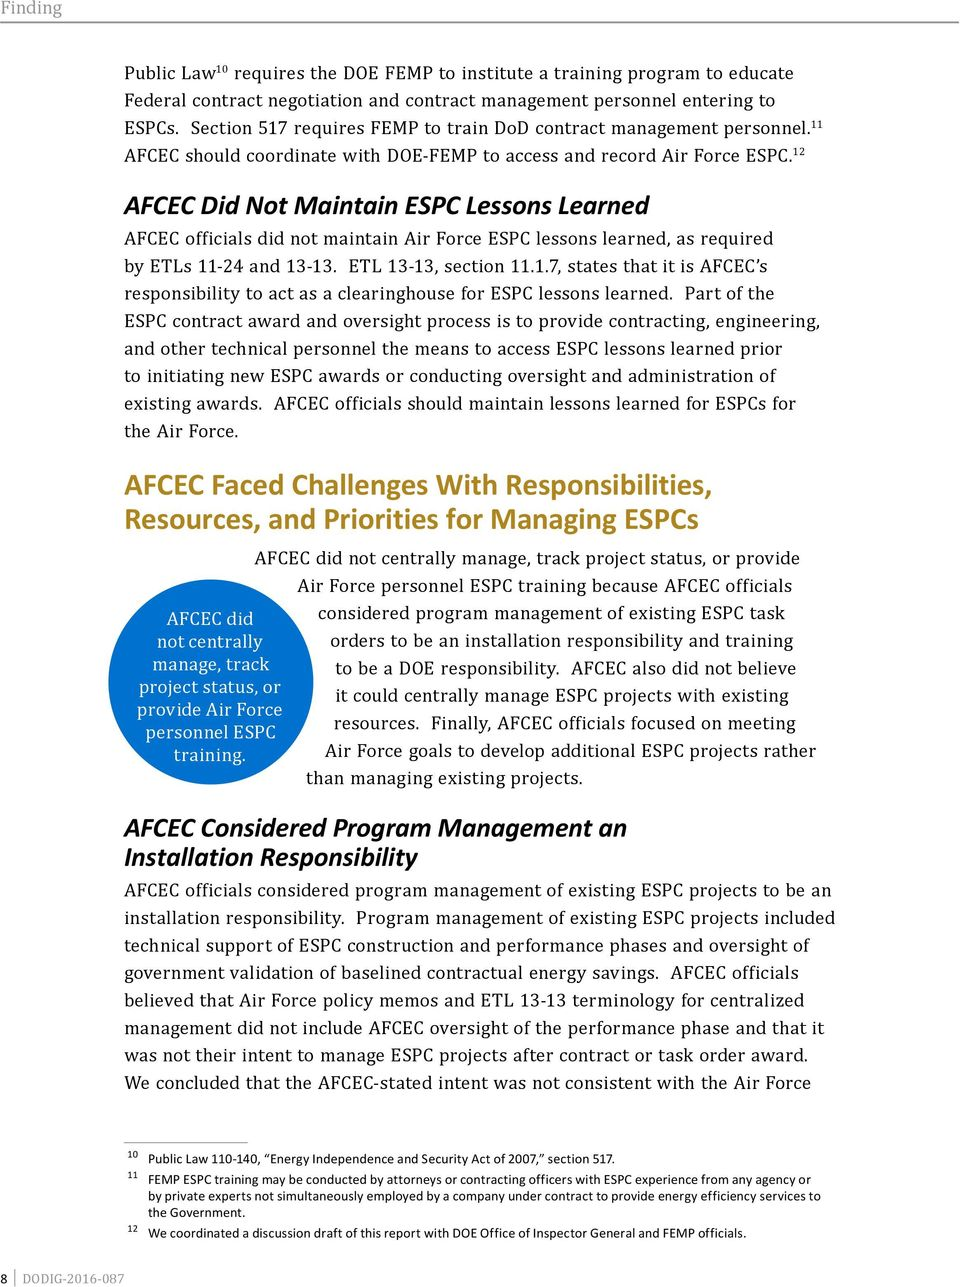 12 AFCEC Did Not Maintain ESPC Lessons Learned AFCEC officials did not maintain Air Force ESPC lessons learned, as required by ETLs 11-24 and 13-13. ETL 13-13, section 11.1.7, states that it is AFCEC s responsibility to act as a clearinghouse for ESPC lessons learned.